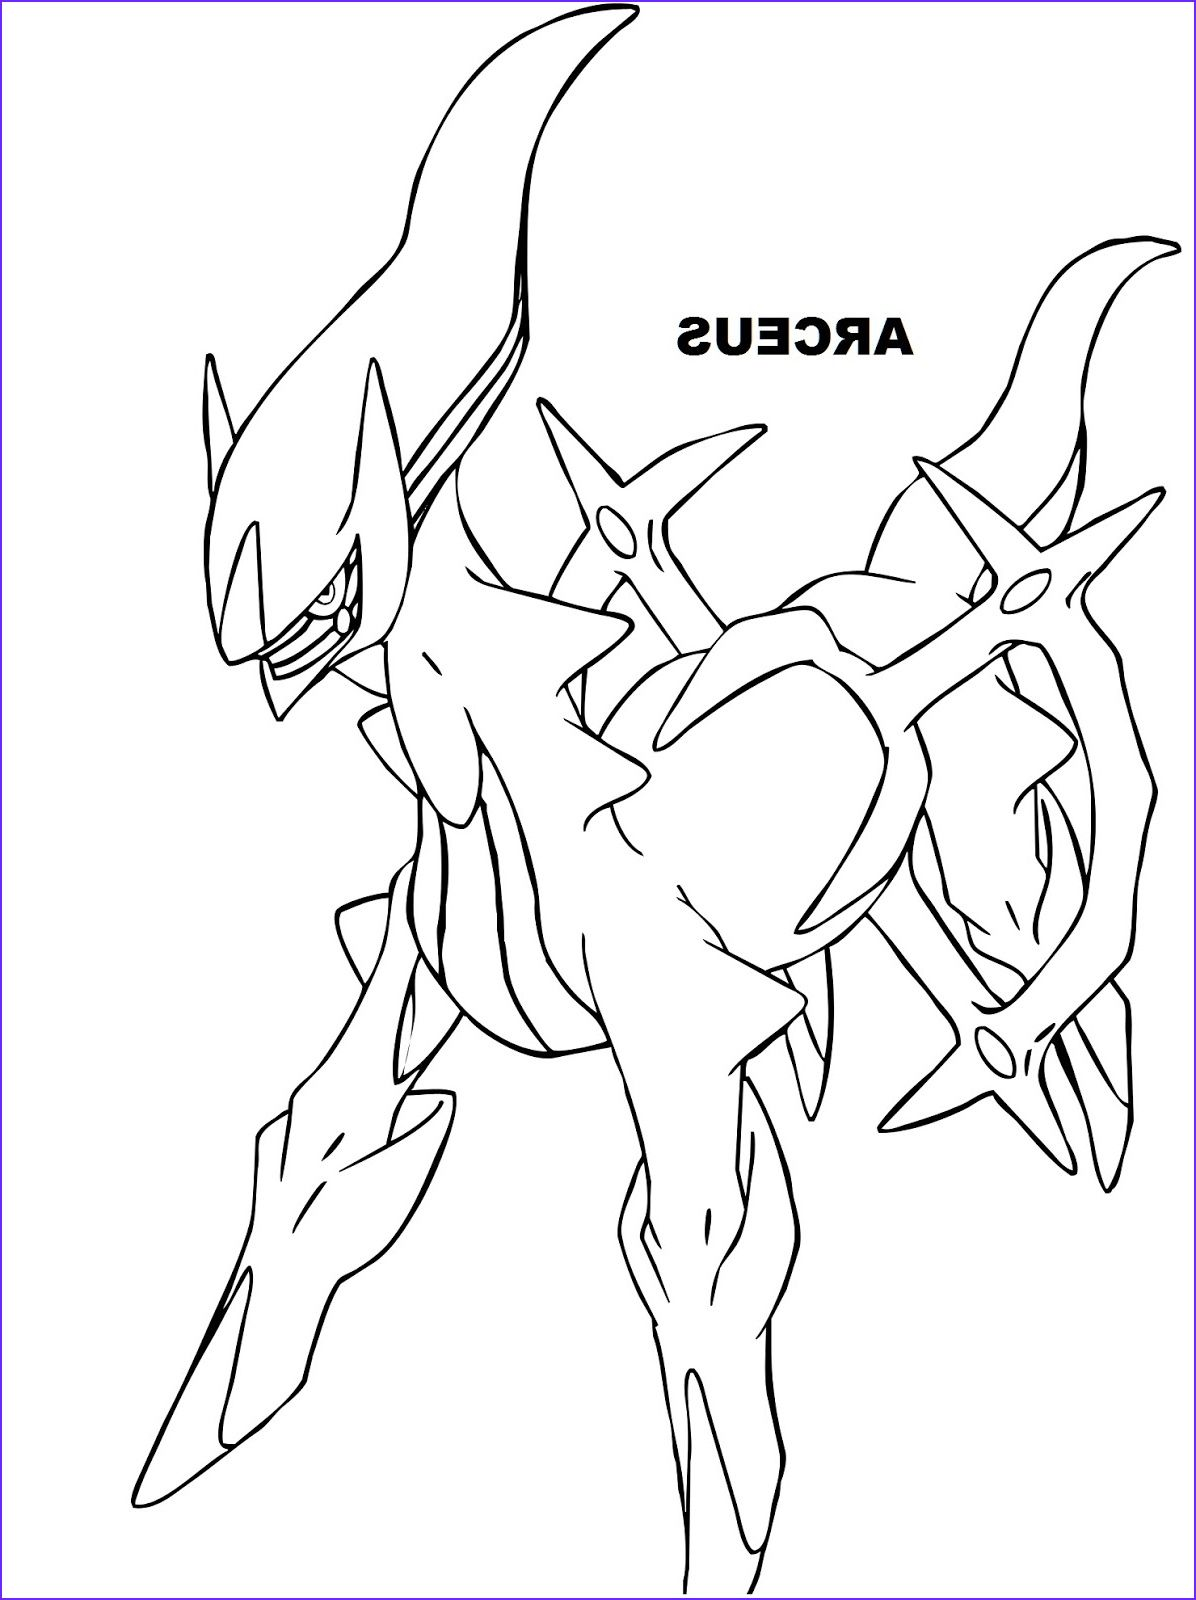 Free Legendary Pokemon Coloring Pages For Kids Pokemon Coloring Pages Pokemon Coloring Coloring Pages